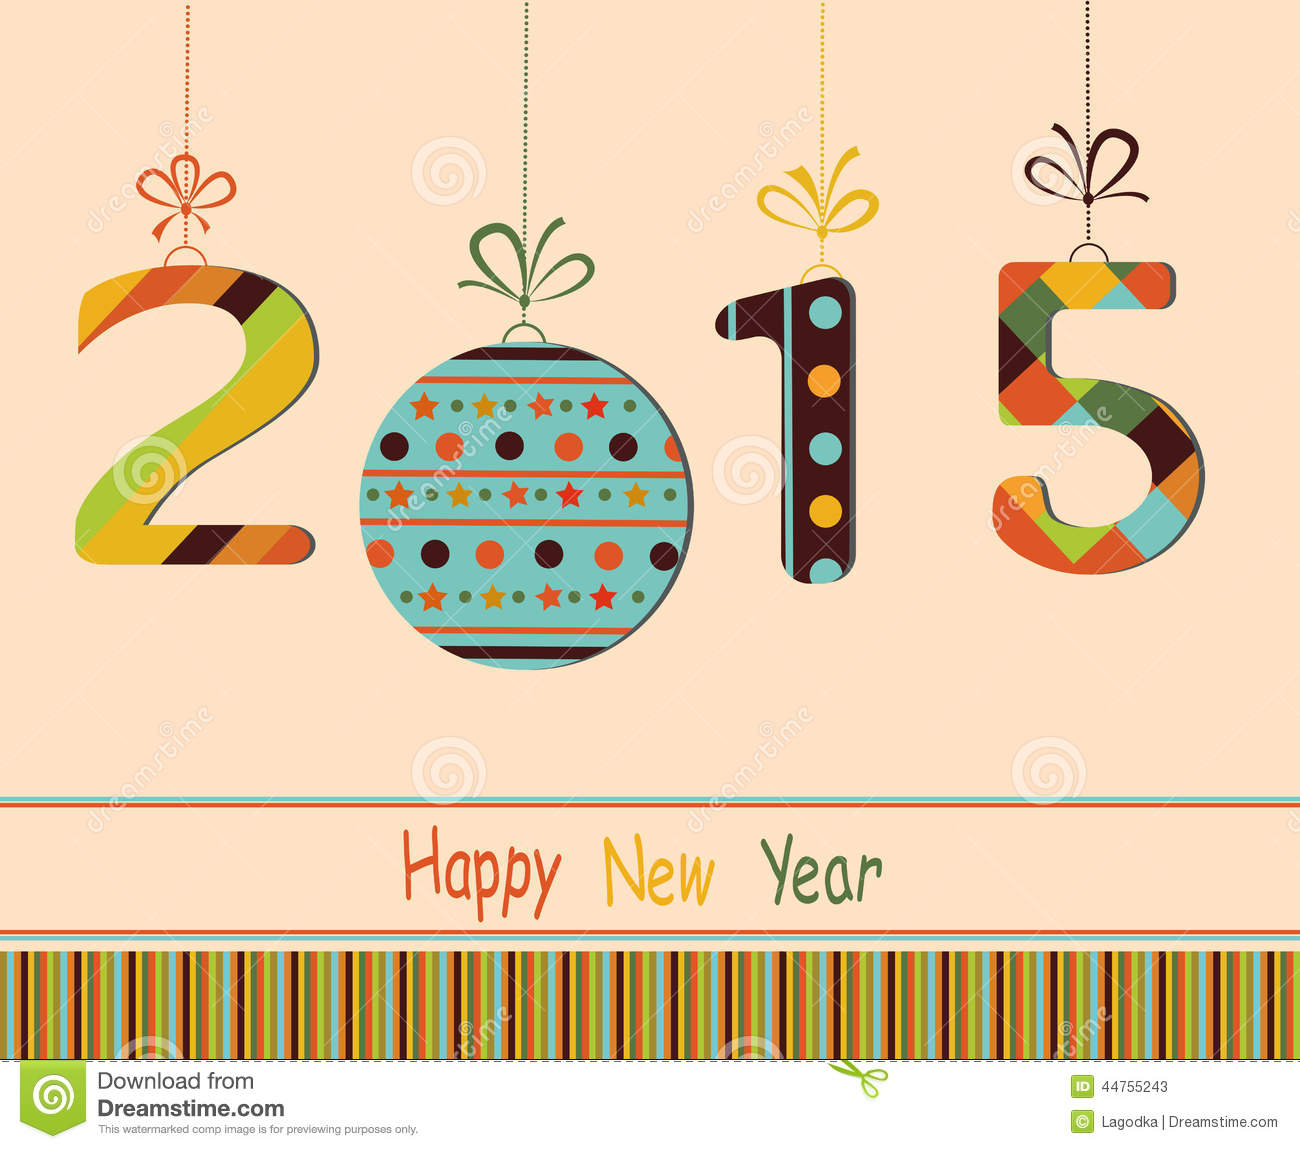 Happy new year 2015 stock vector illustration of love 44755243 happy new year 2015 m4hsunfo